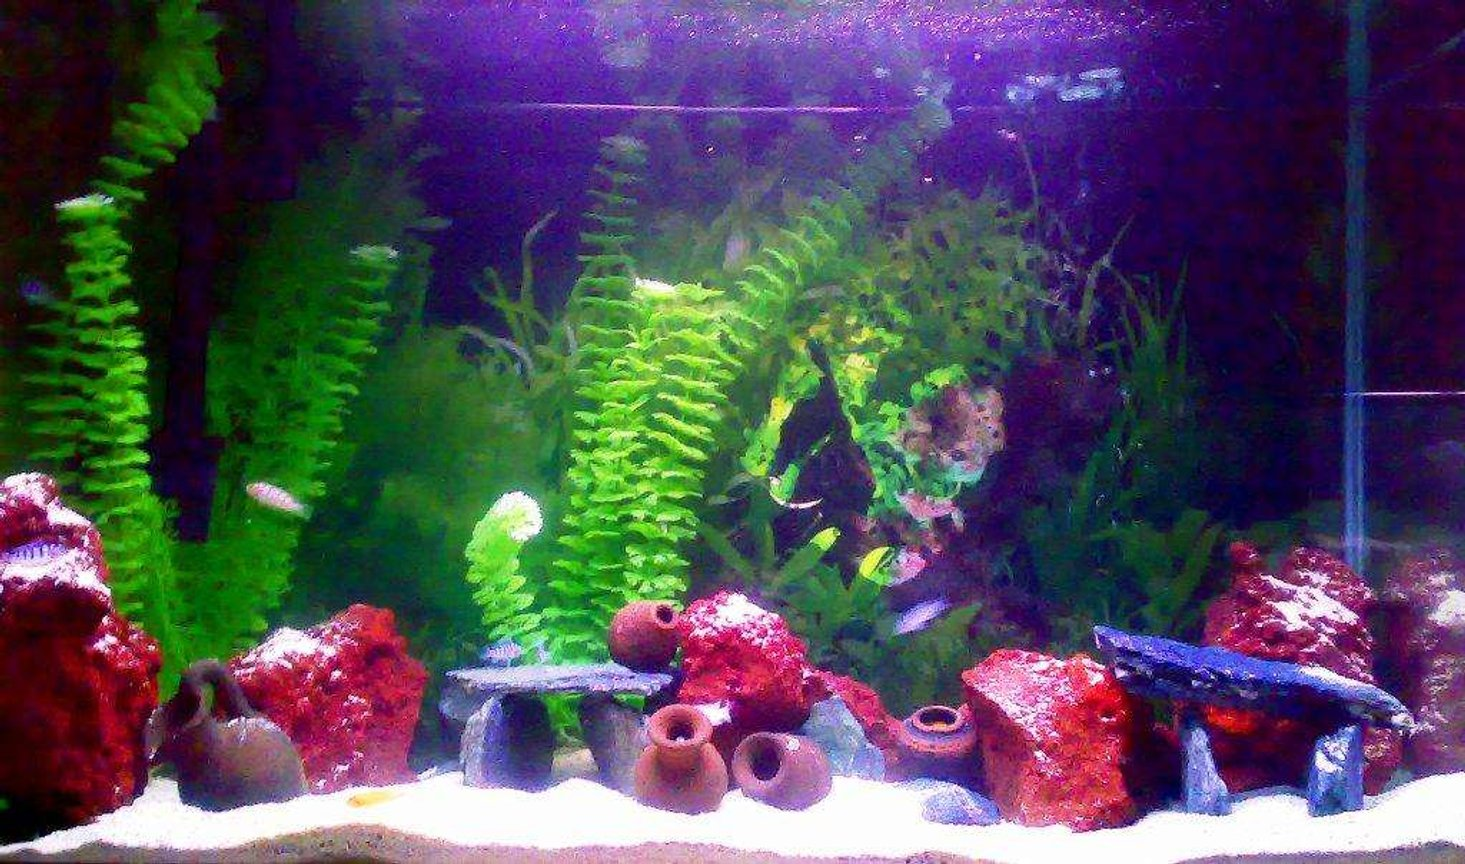 30 gallons freshwater fish tank (mostly fish and non-living decorations) - My new cichlid tank!